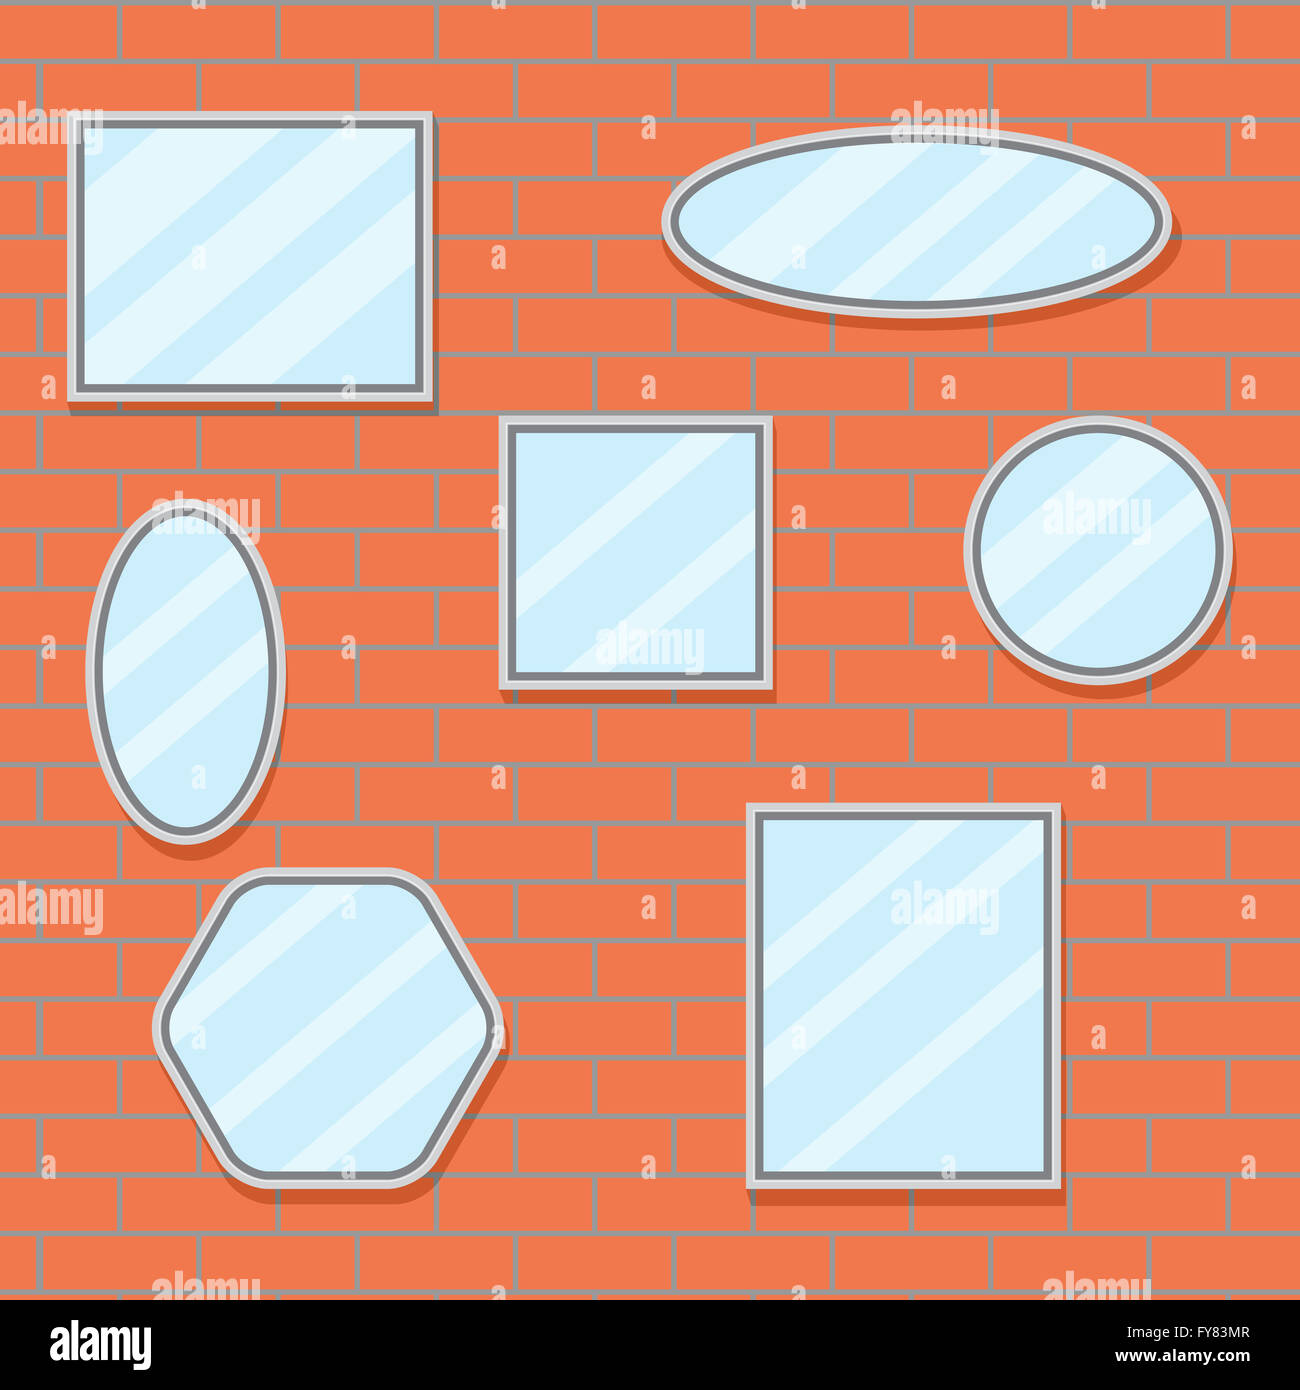 orange wall mirror image collections